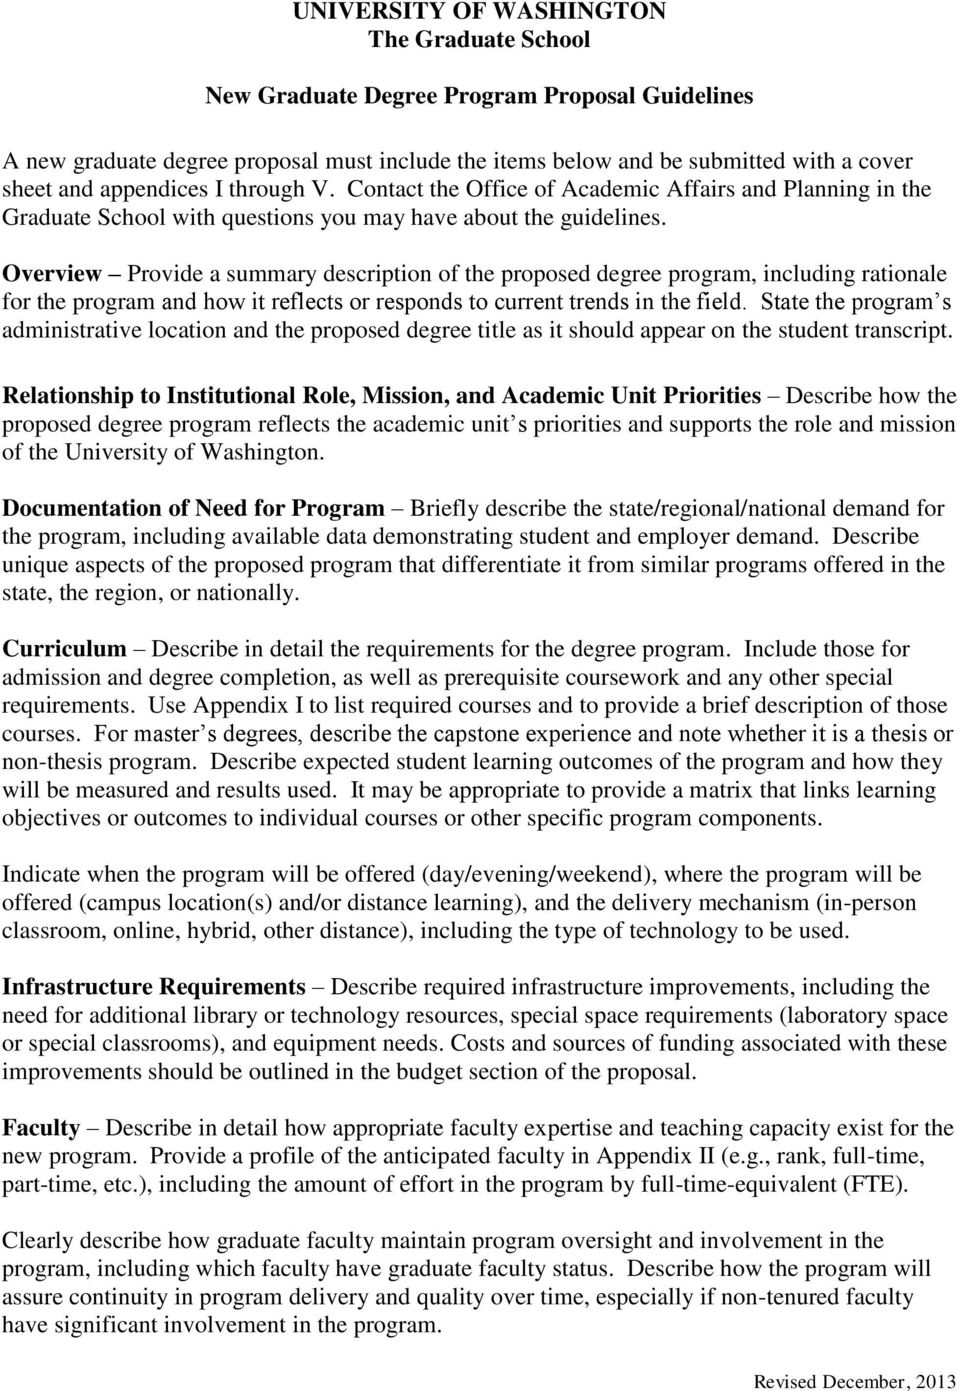 Overview Provide a summary description of the proposed degree program, including rationale for the program and how it reflects or responds to current trends in the field.